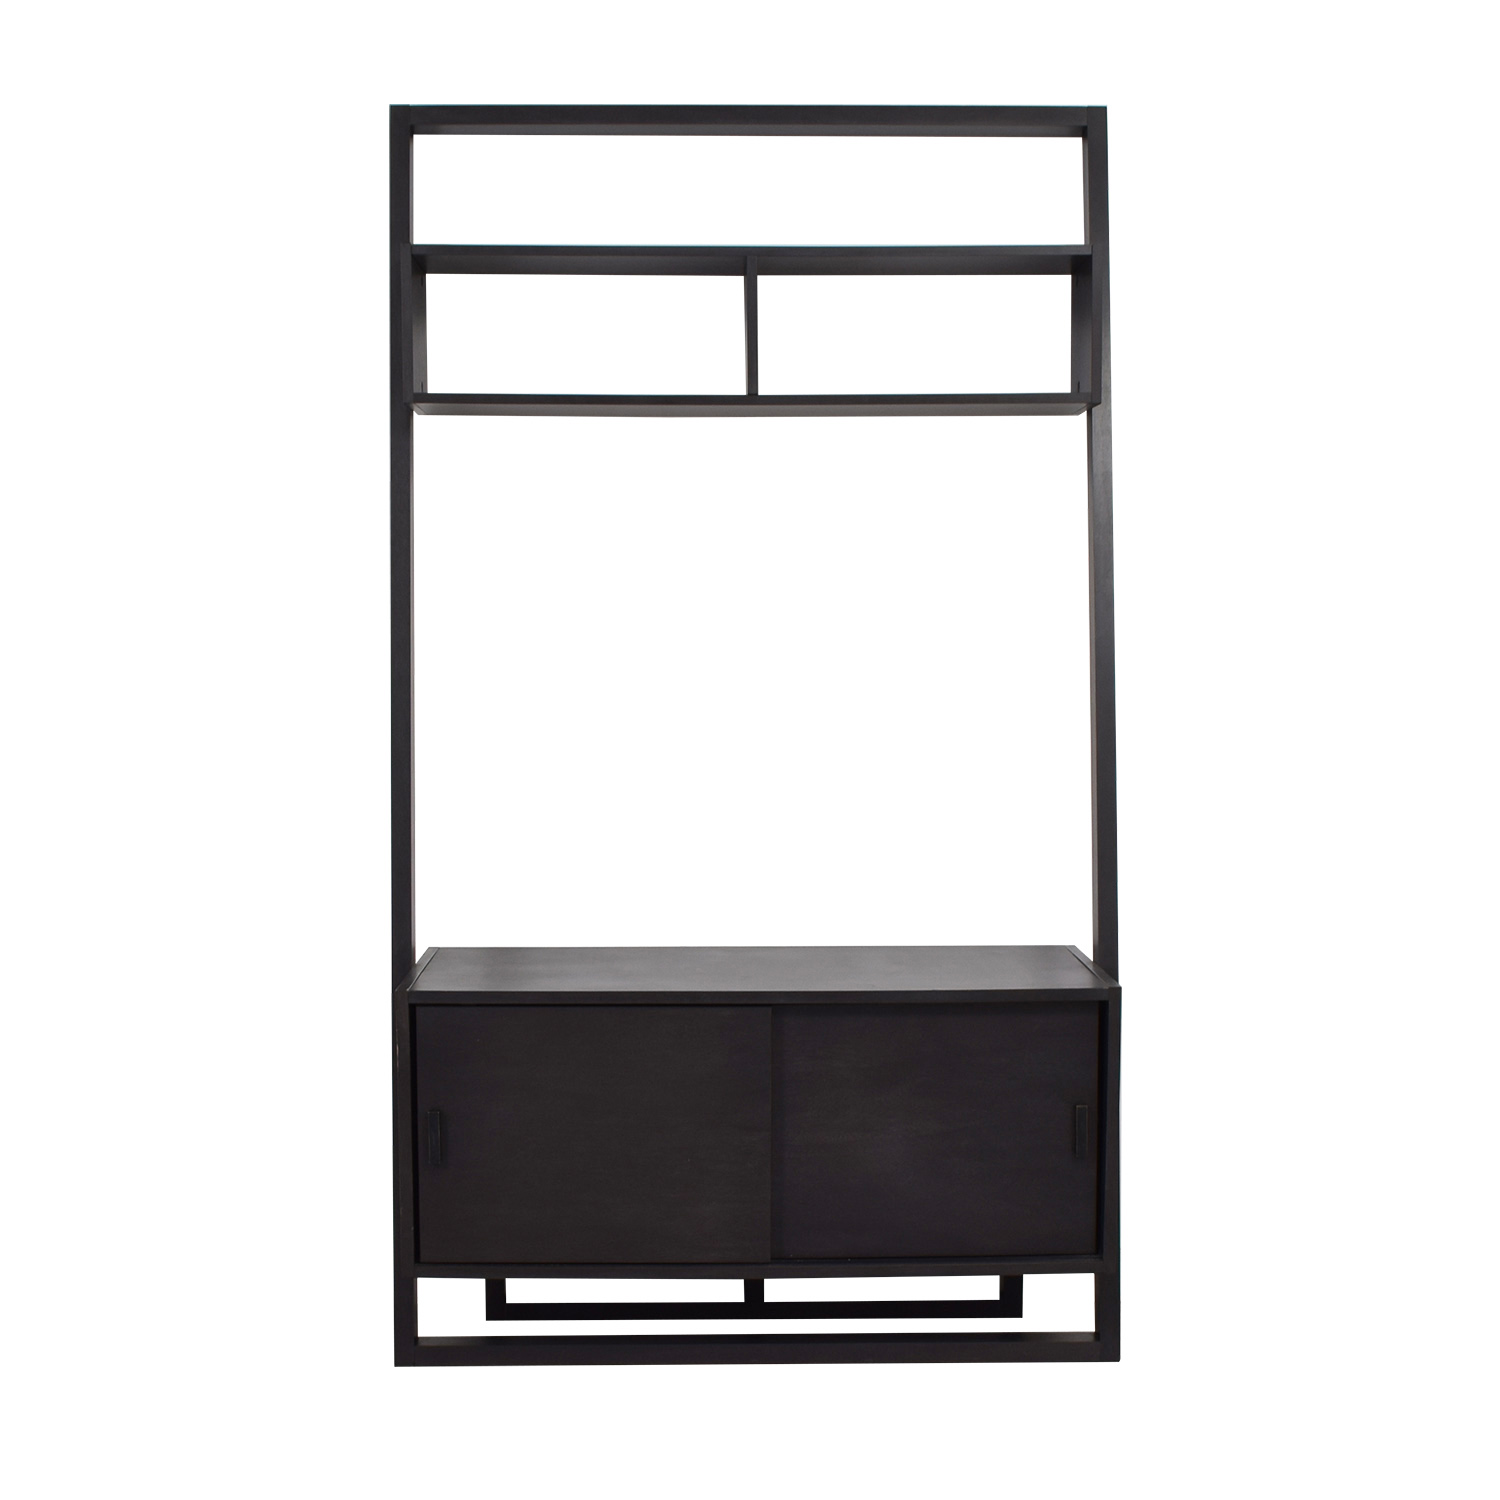 Crate & Barrel Crate & Barrel Leaning TV Stand for sale